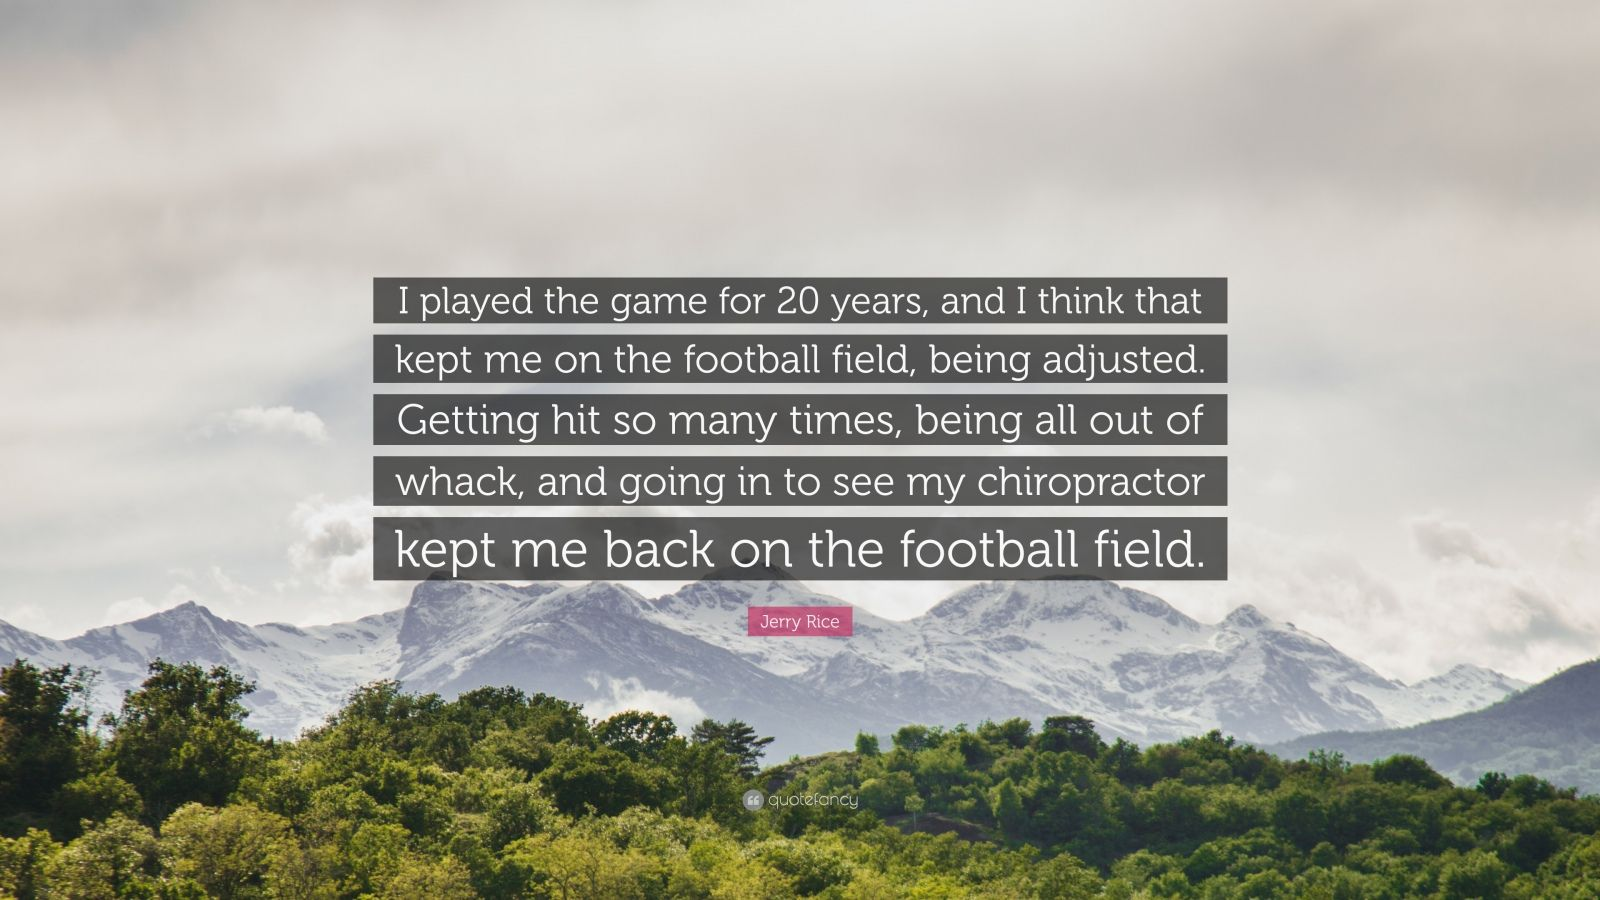 """Jerry Rice Quote: """"I played the game for 20 years, and I think that kept me on the football field, being adjusted. Getting hit so many times, being all out of whack, and going in to see my chiropractor kept me back on the football field."""""""